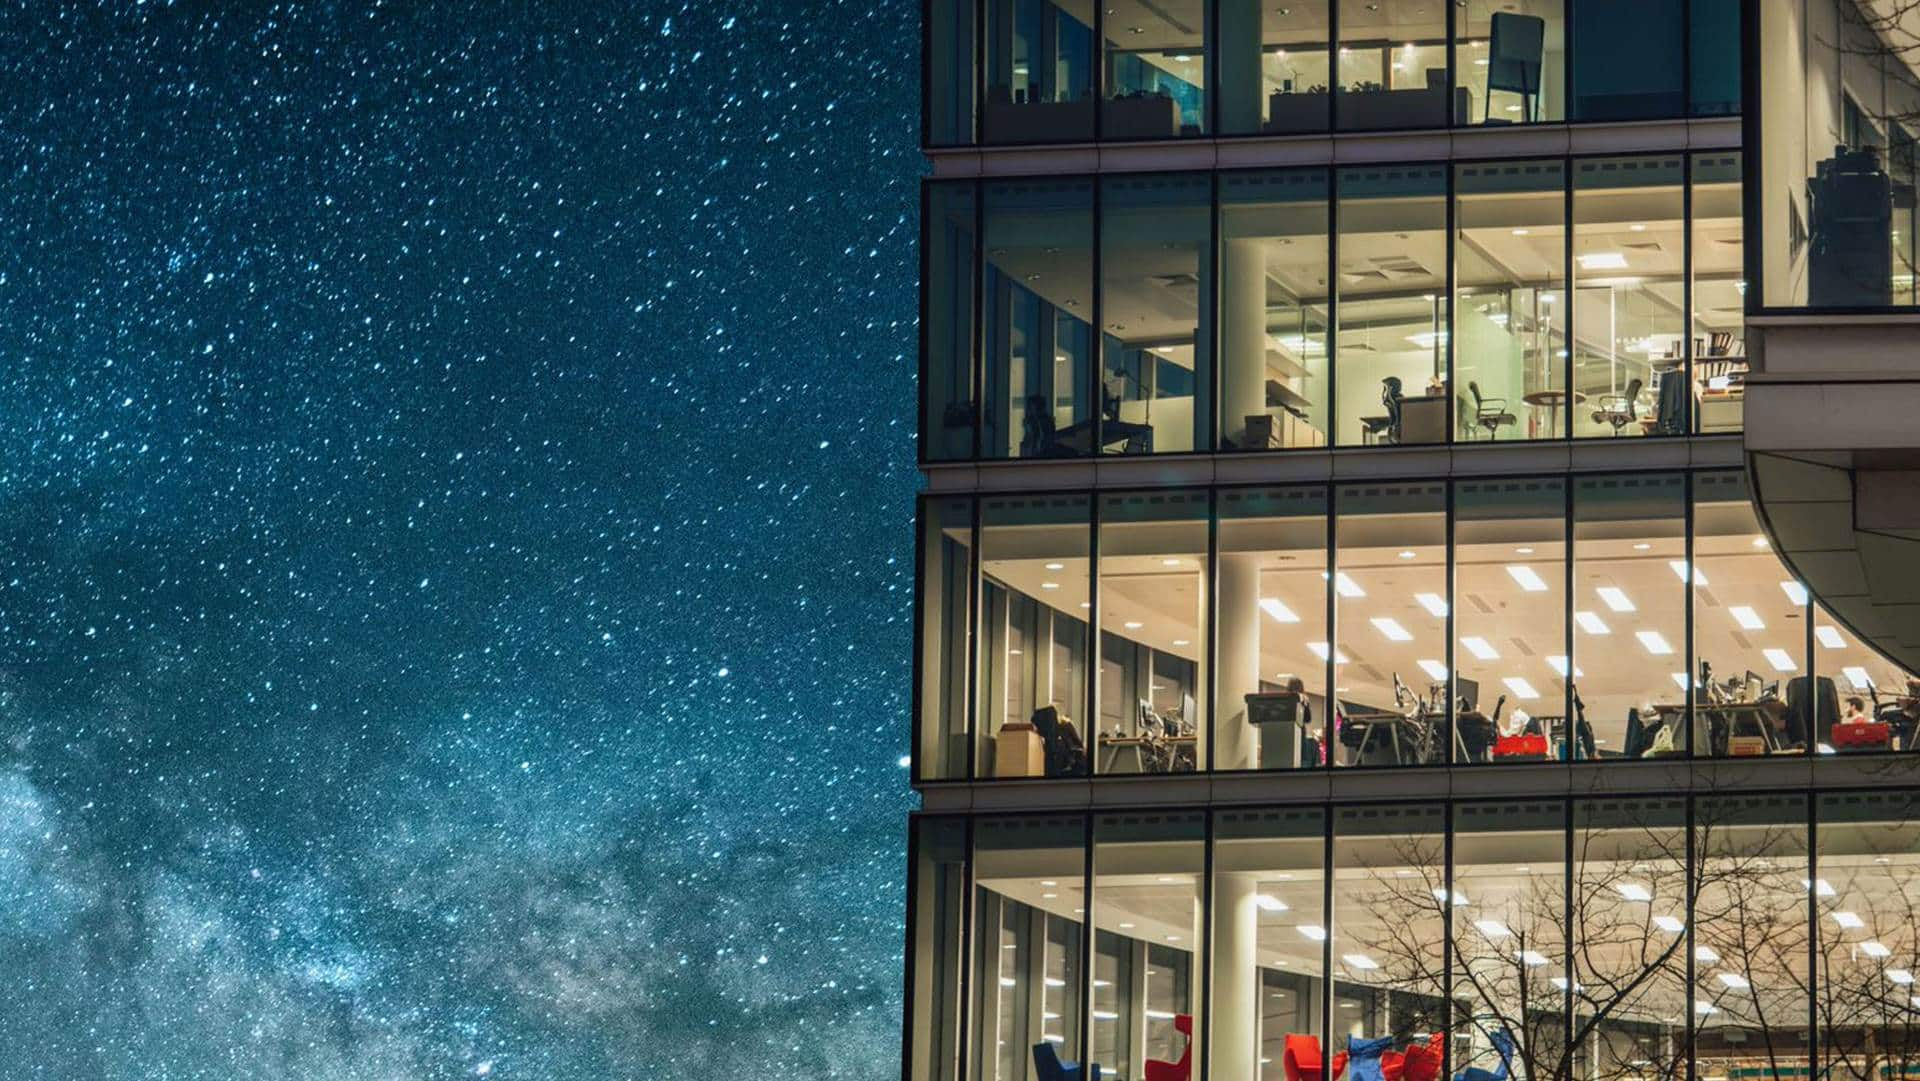 glass office building at night